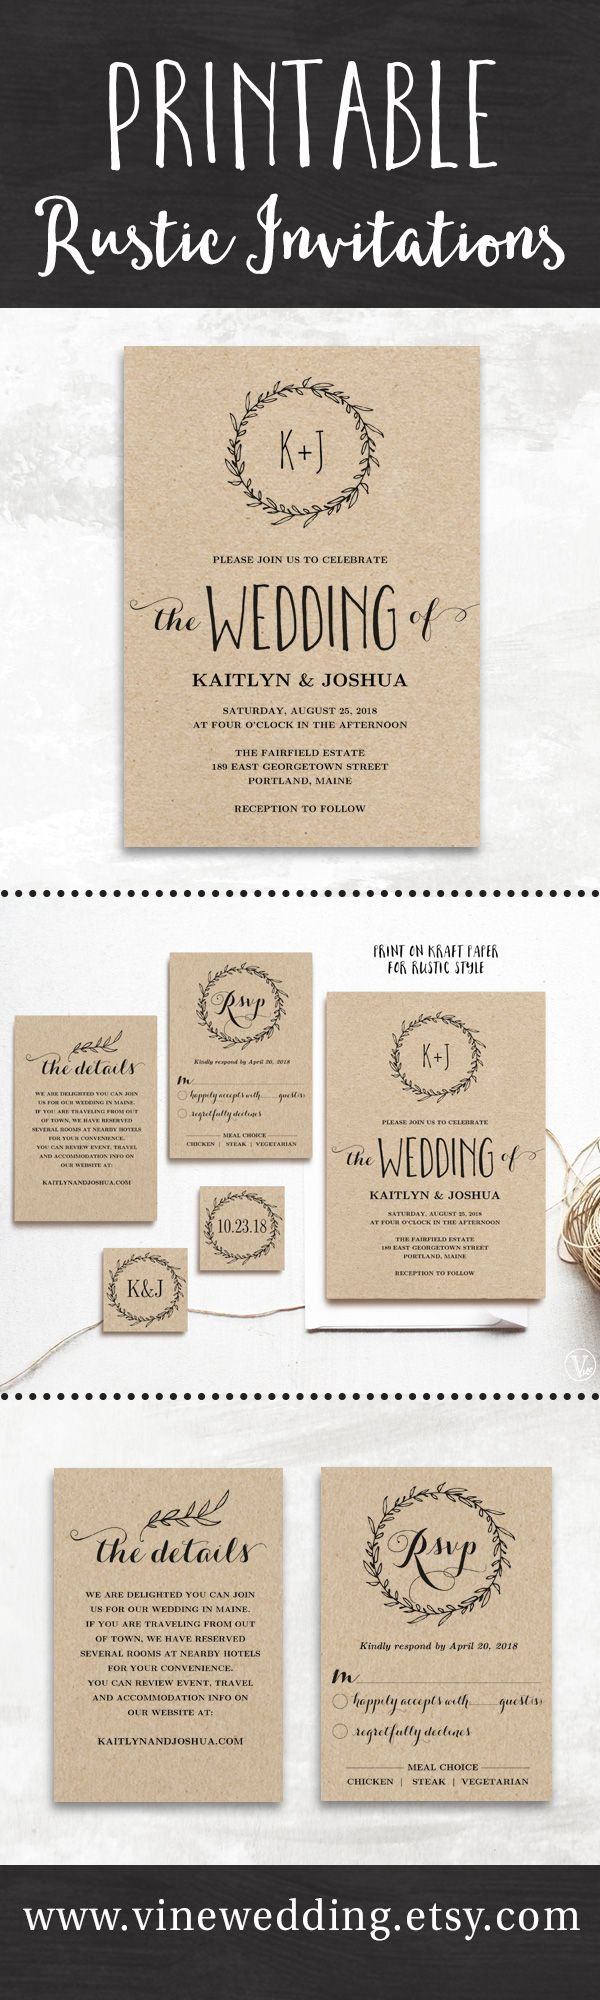 Rustic Invitation Wedding Weddings and